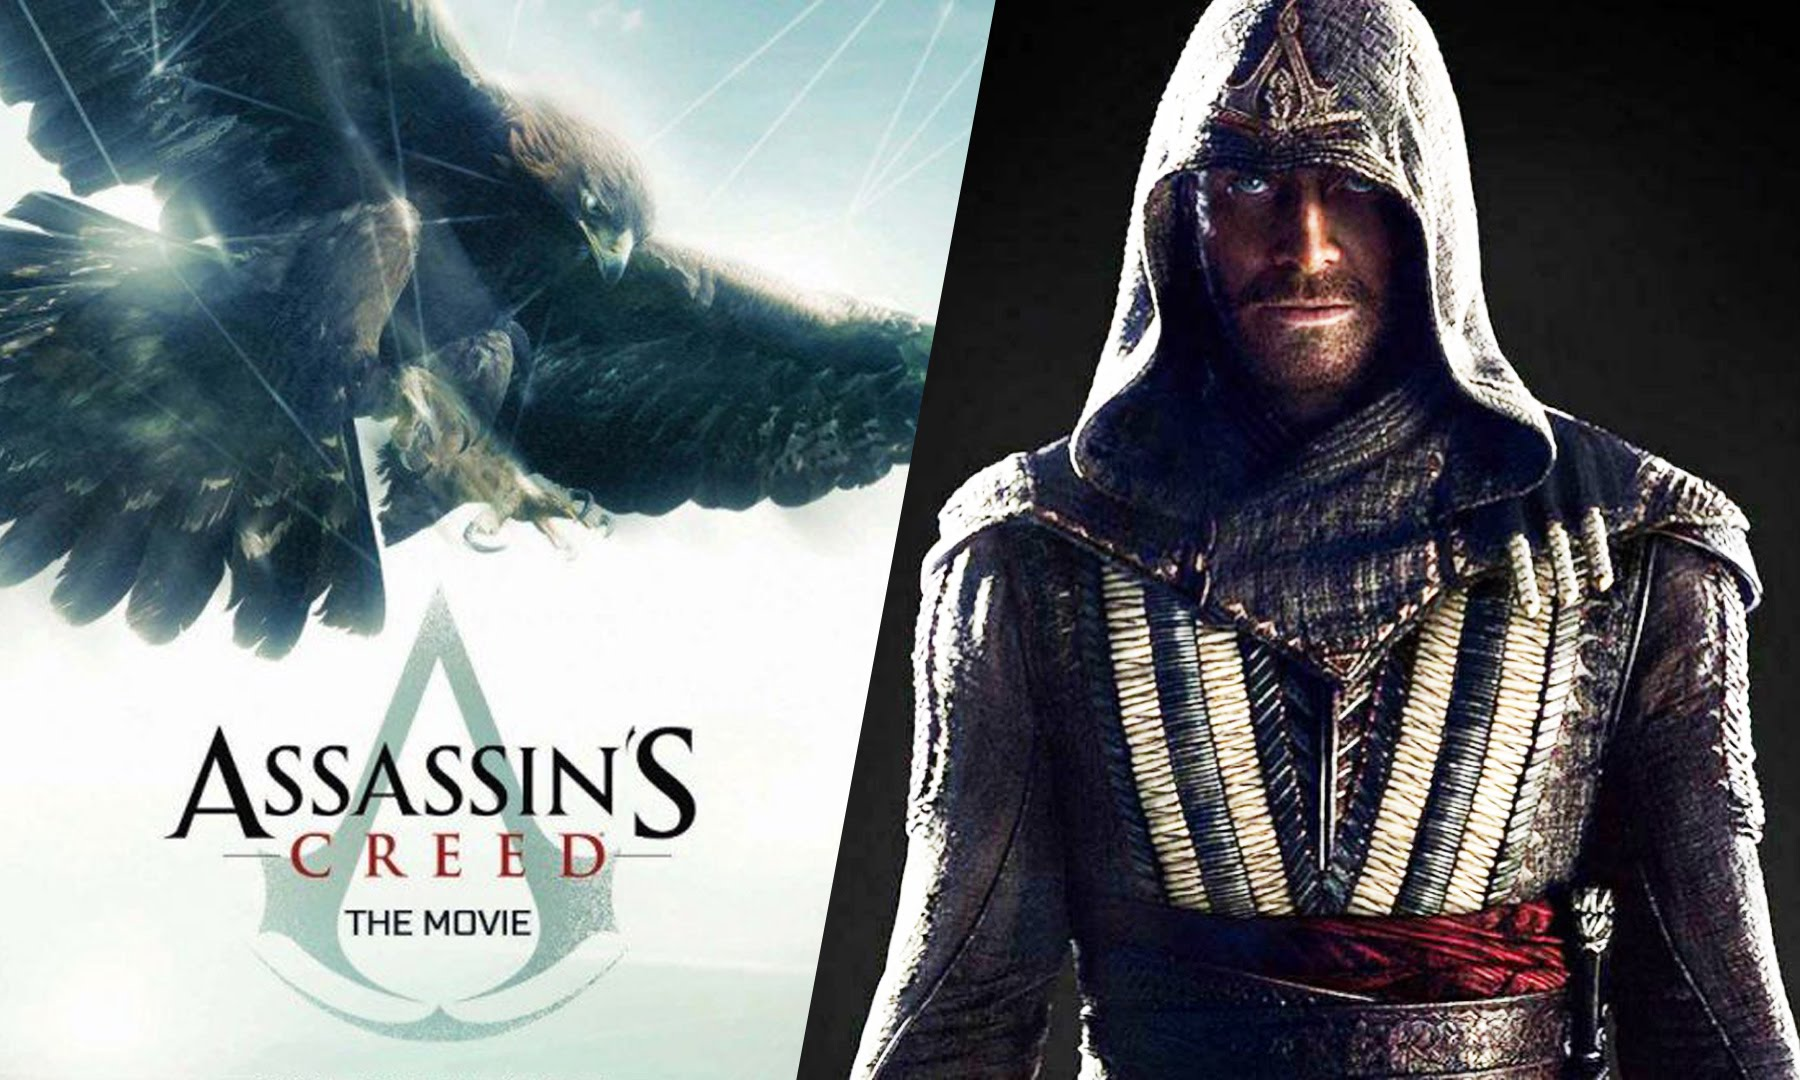 Assassin's Creed HQ wallpapers